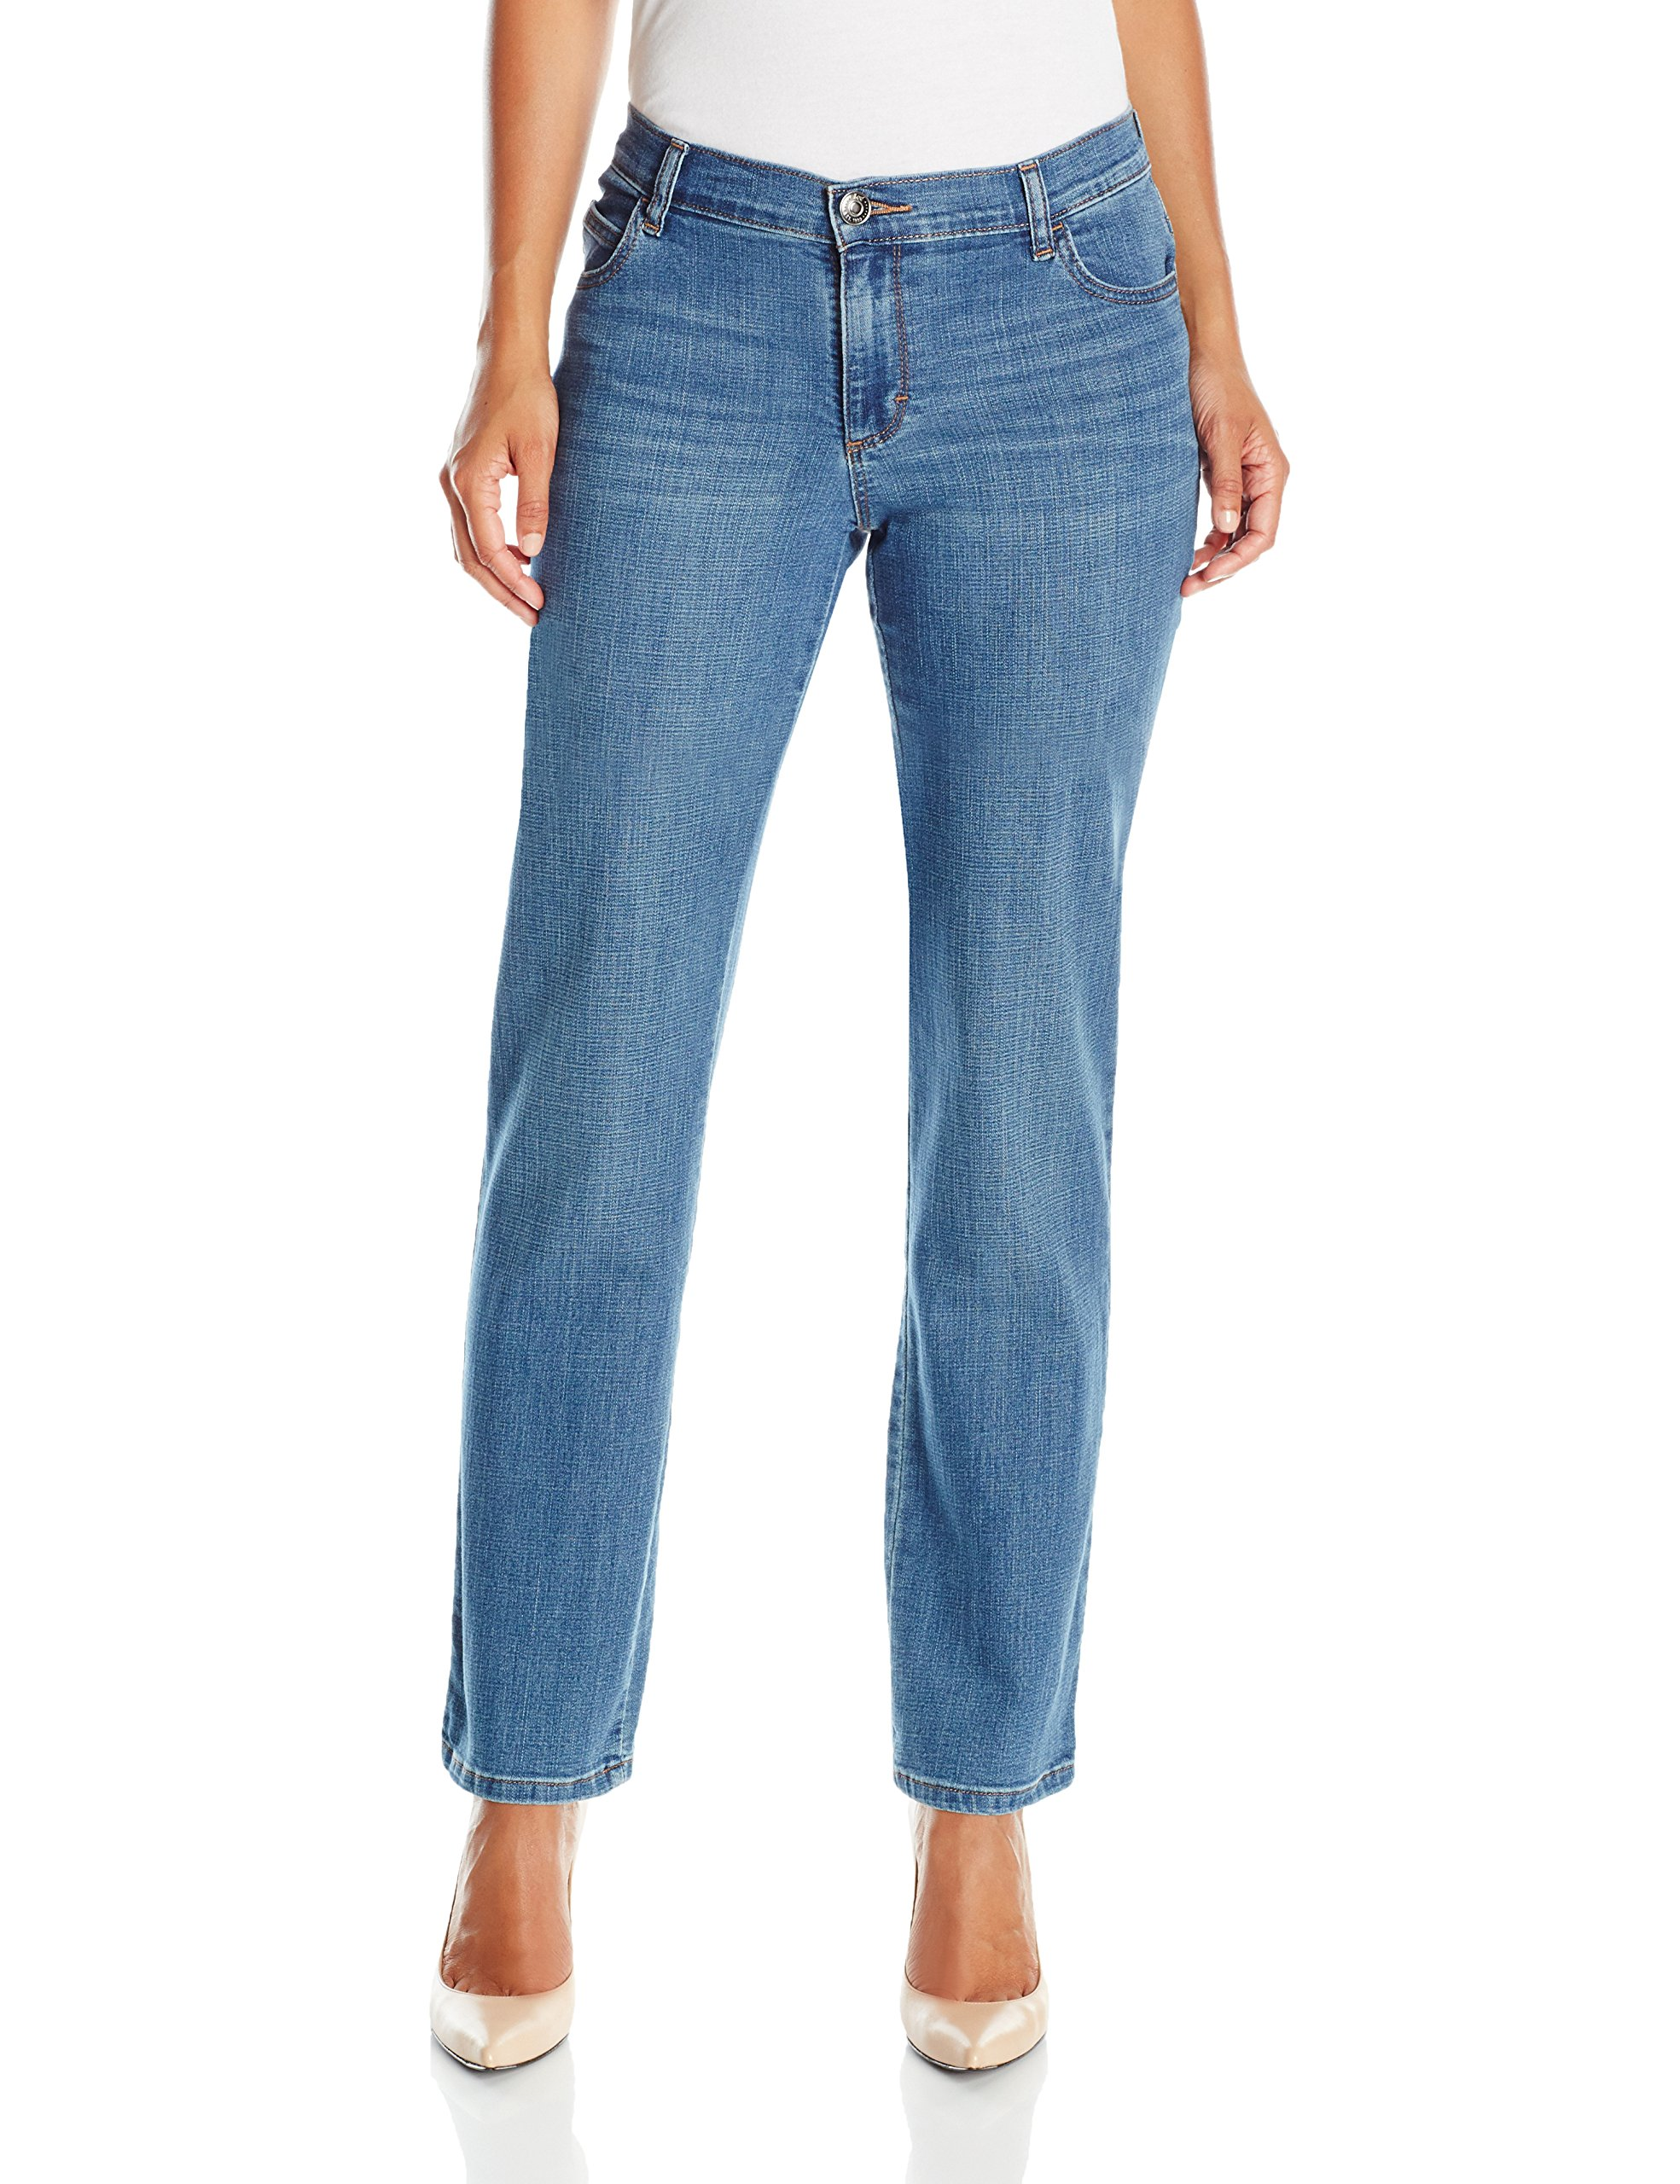 Lee Women's Relaxed Fit Straight Leg Jean, Meridian, 16 Petite